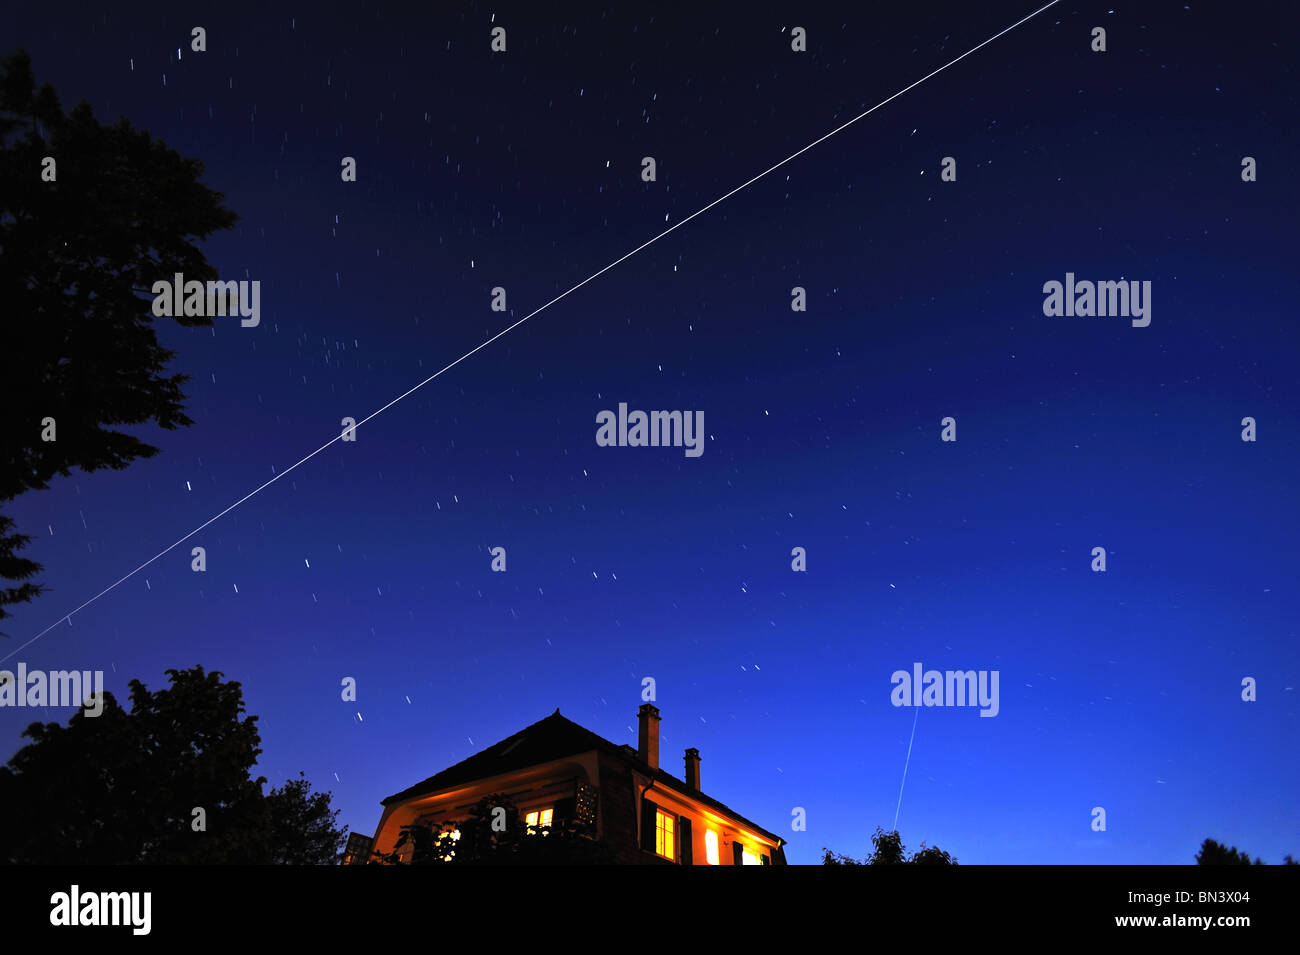 The International Space Station flying through the constellation of the Plough (Ursa major) at dusk. - Stock Image